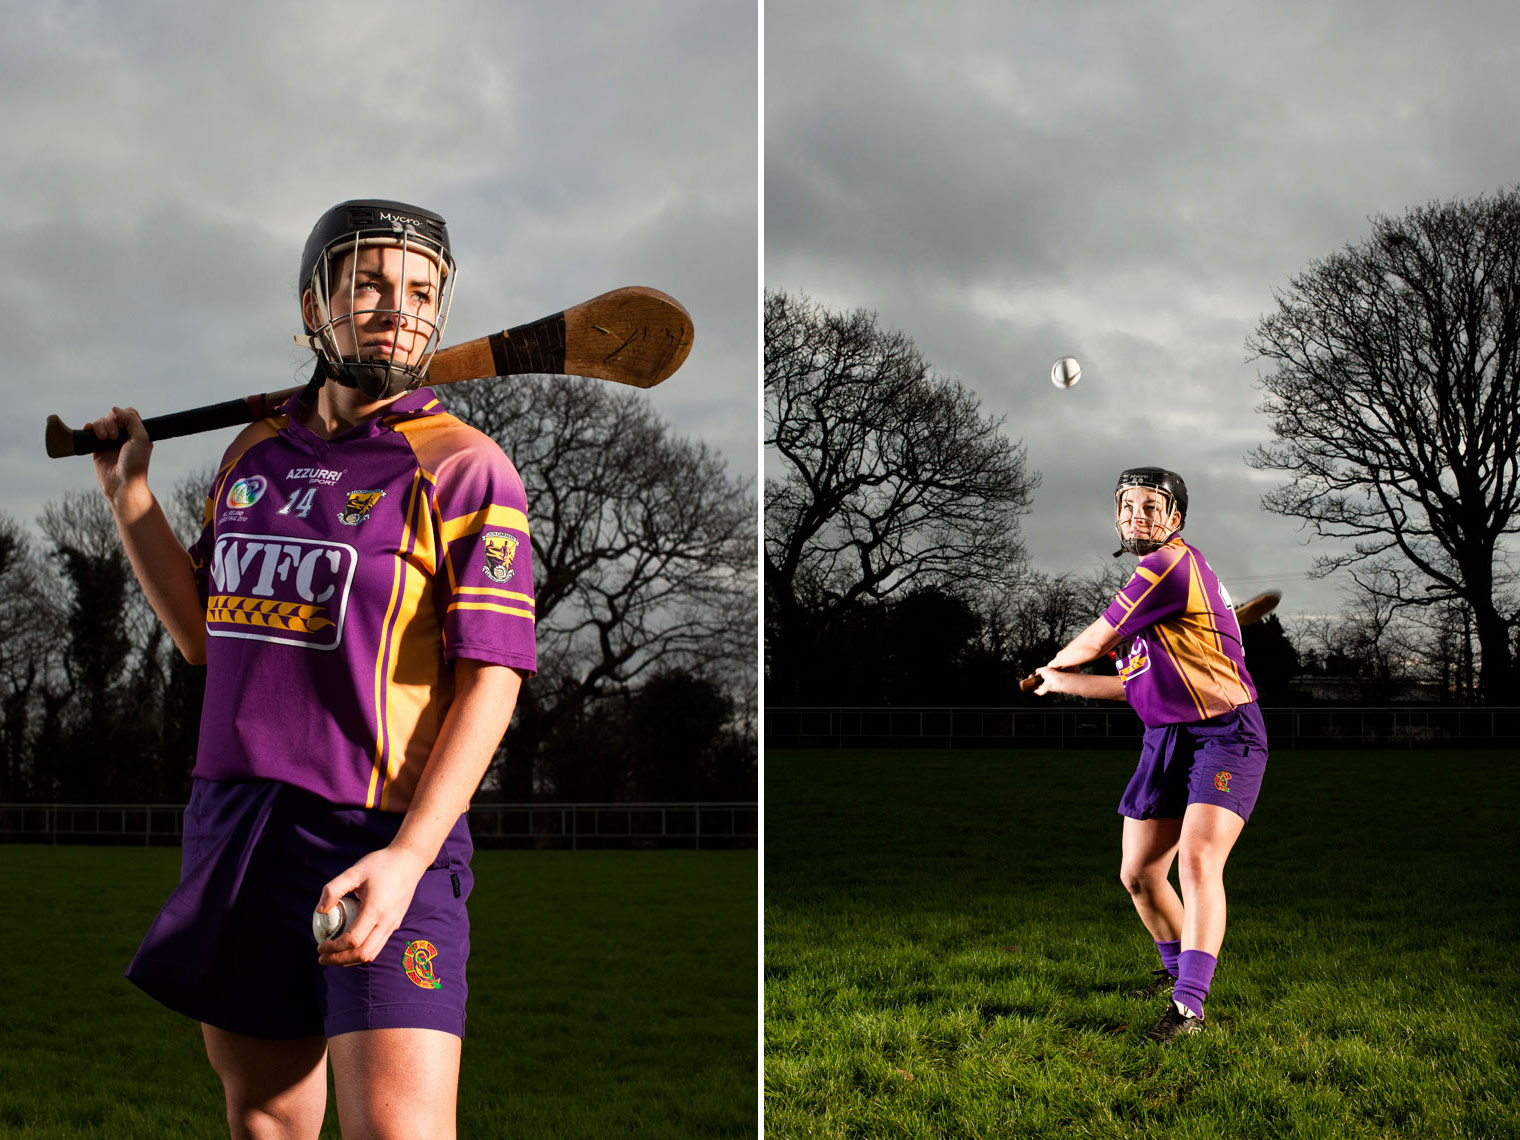 sports action photography: ursula jacob camogie player